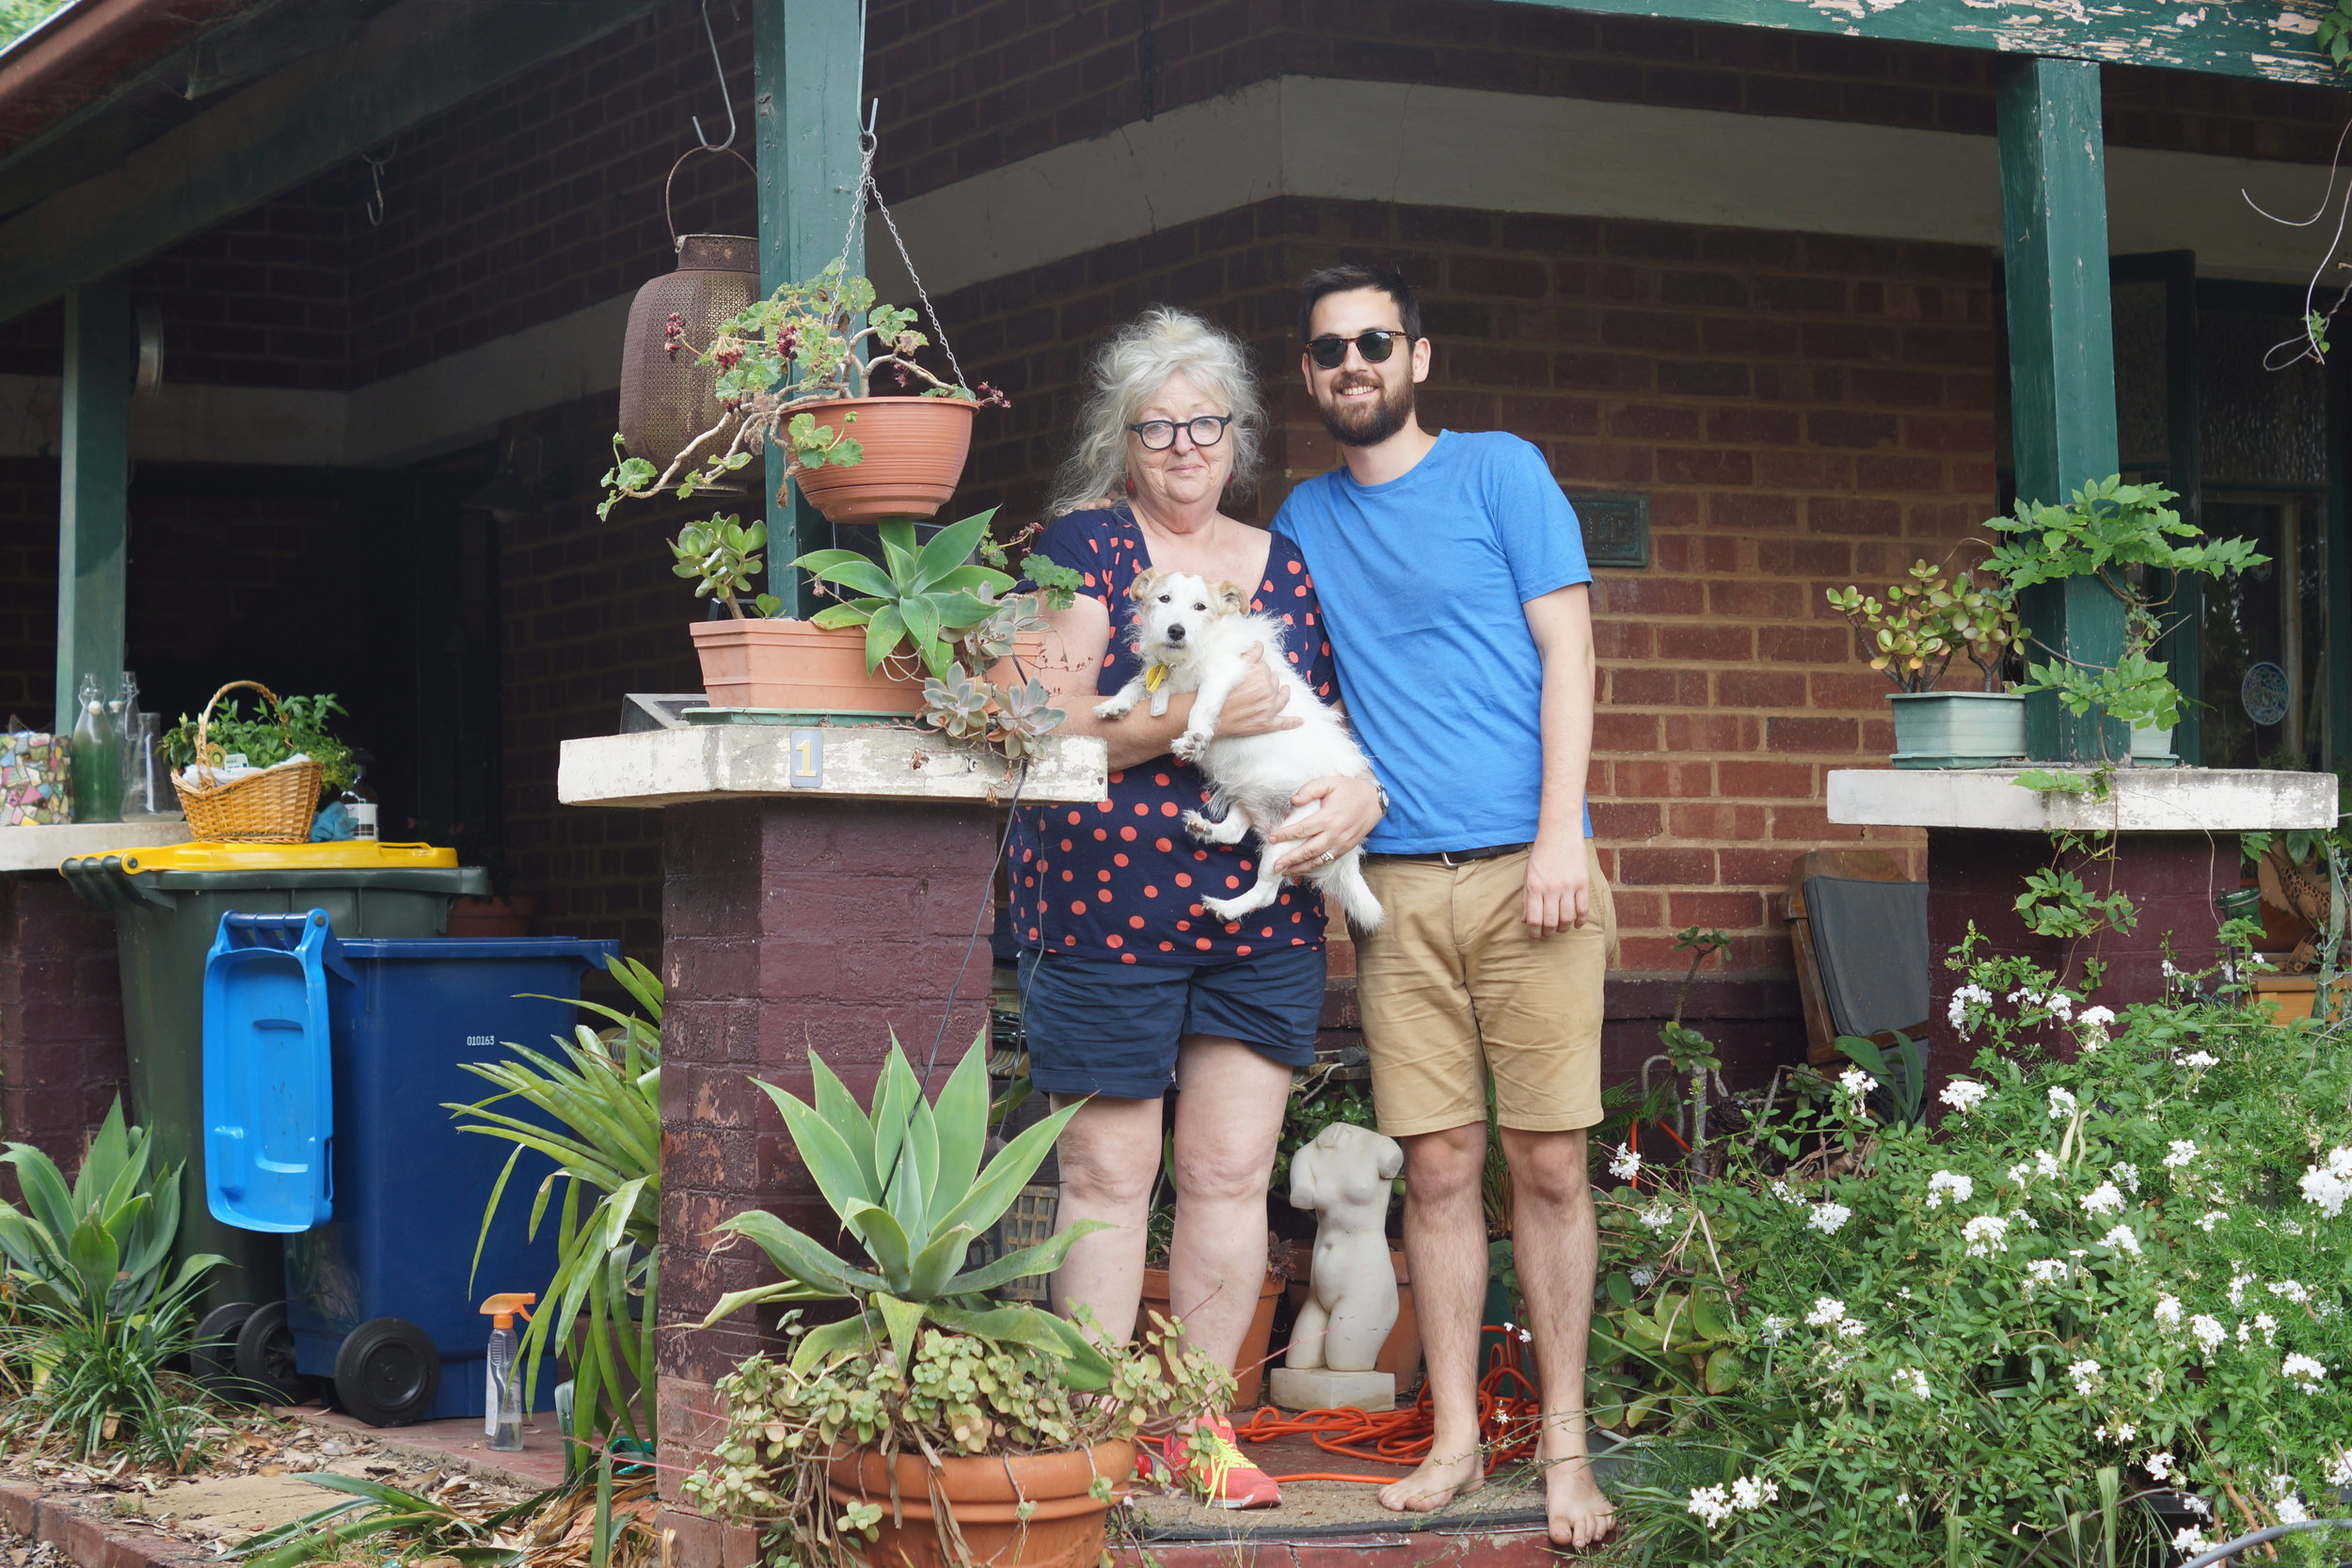 Mum's house, Adelaide. The day before I left.